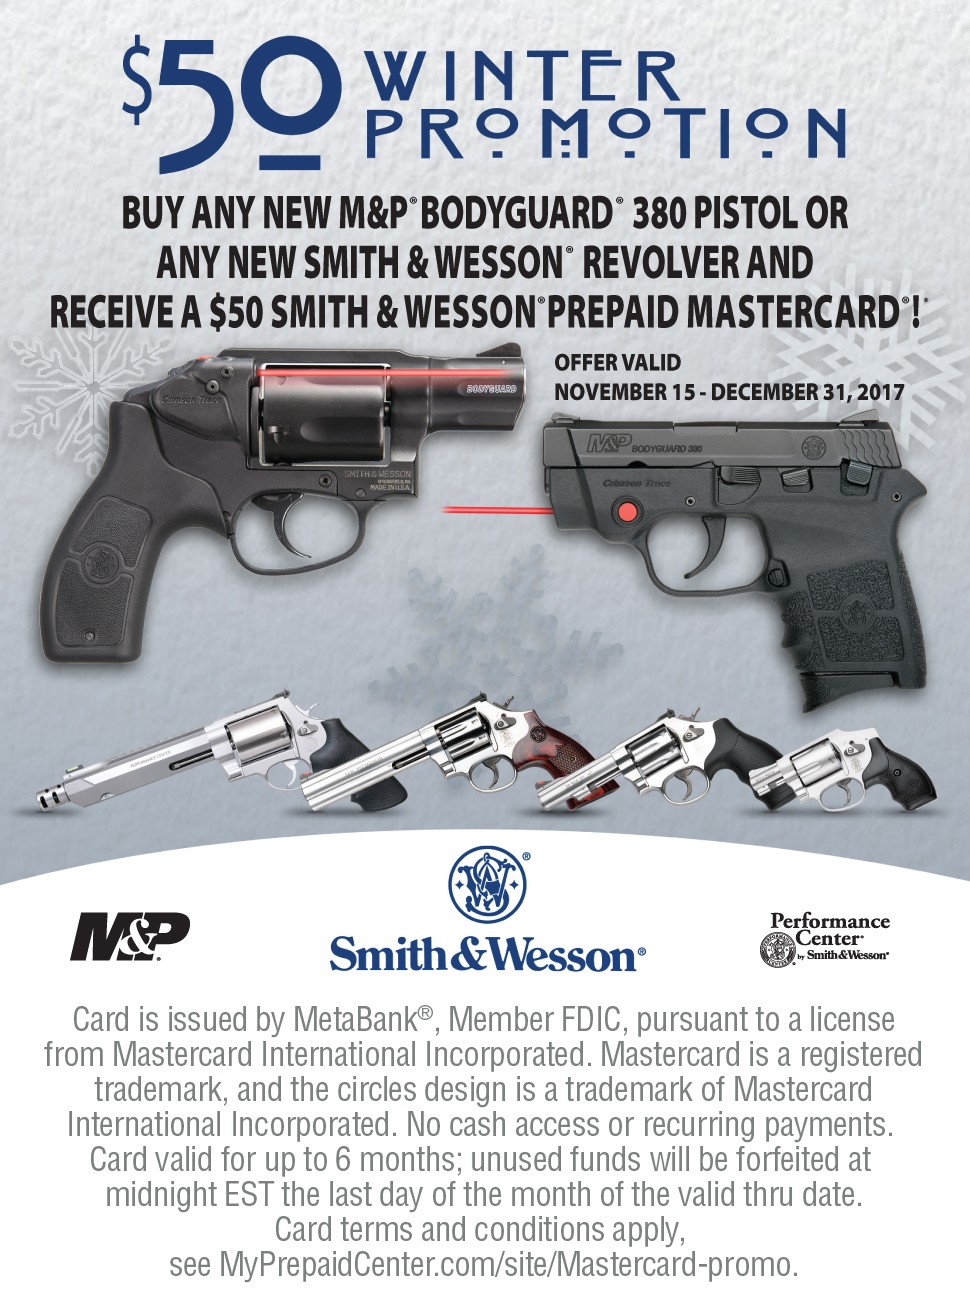 Florida gun supply get armed get trained carry daily free kit xflitez Choice Image